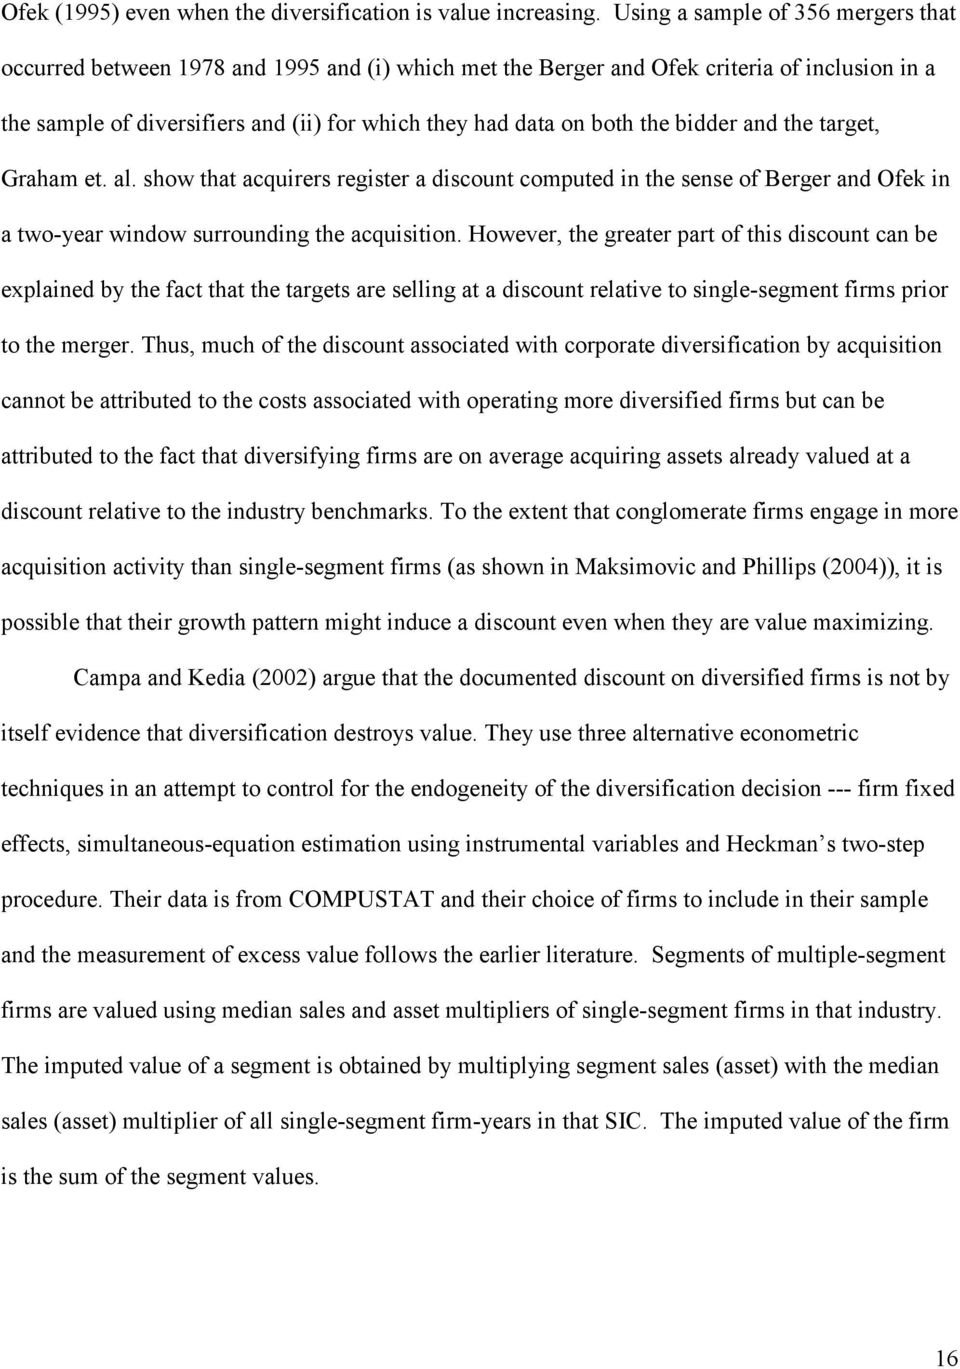 the bidder and the target, Graham et. al. show that acquirers register a discount computed in the sense of Berger and Ofek in a two-year window surrounding the acquisition.